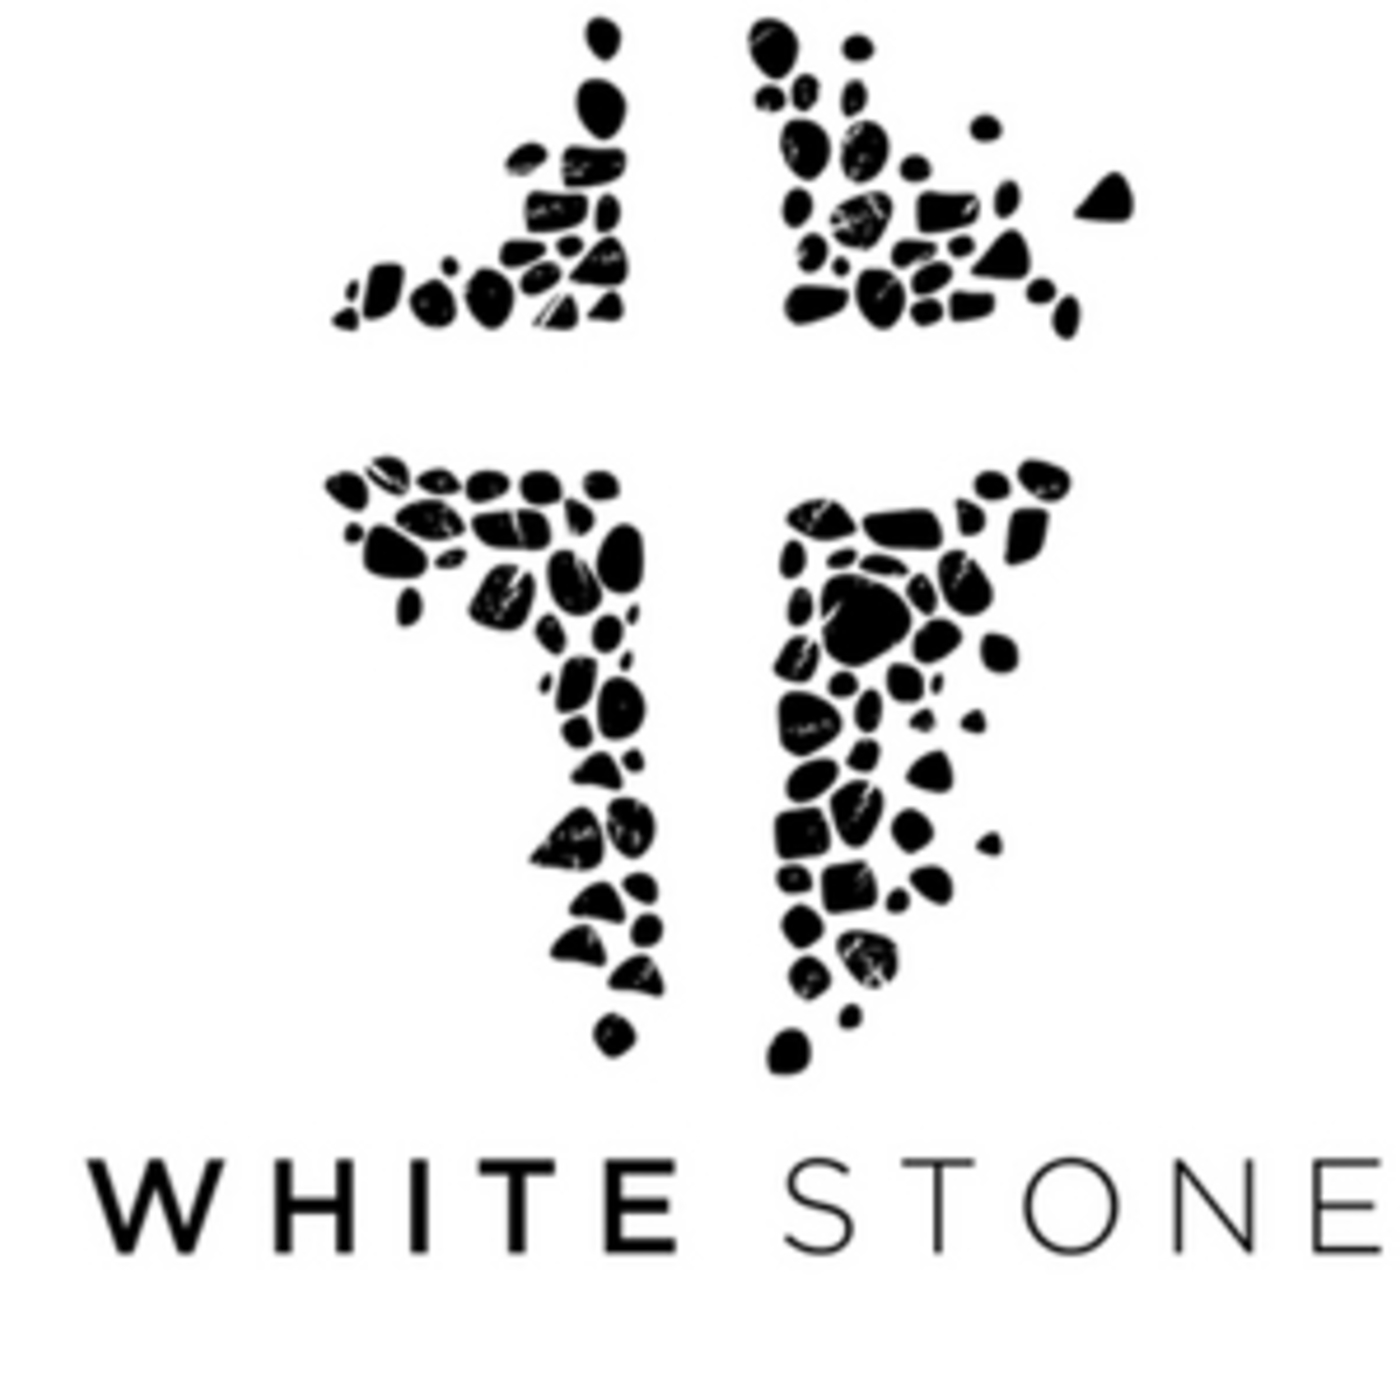 White Stone Messages